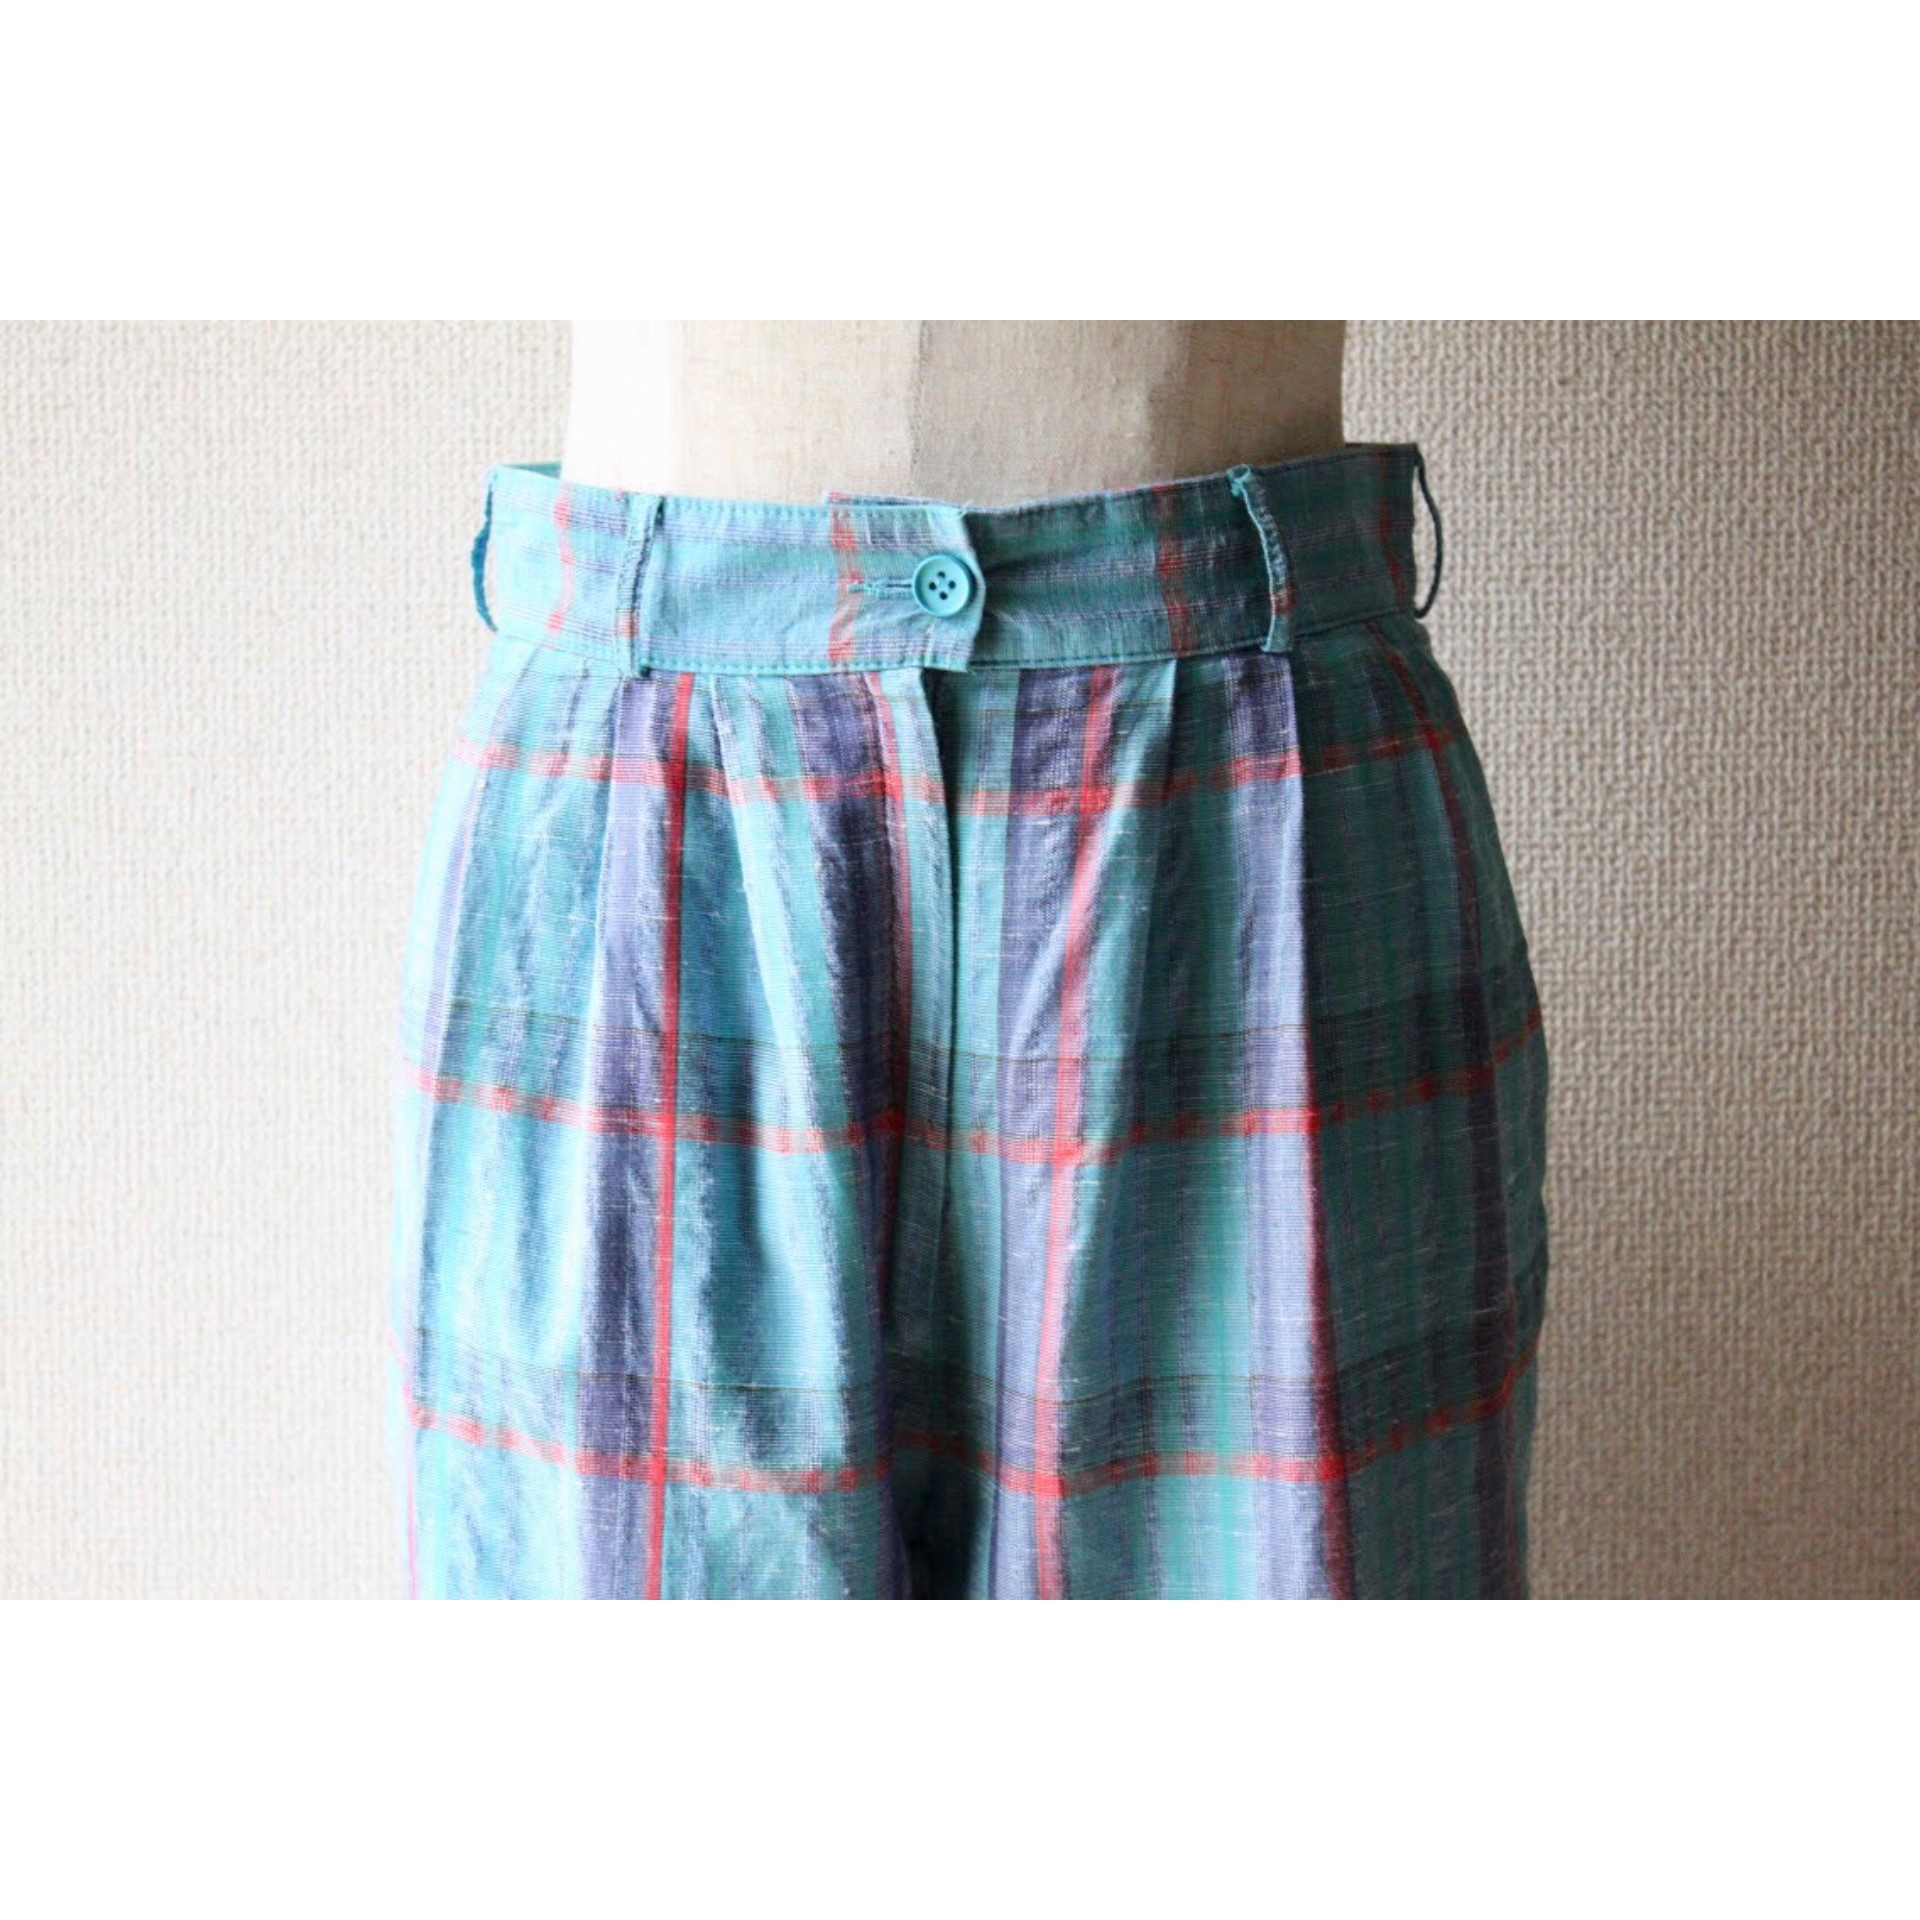 Vintage check slacks